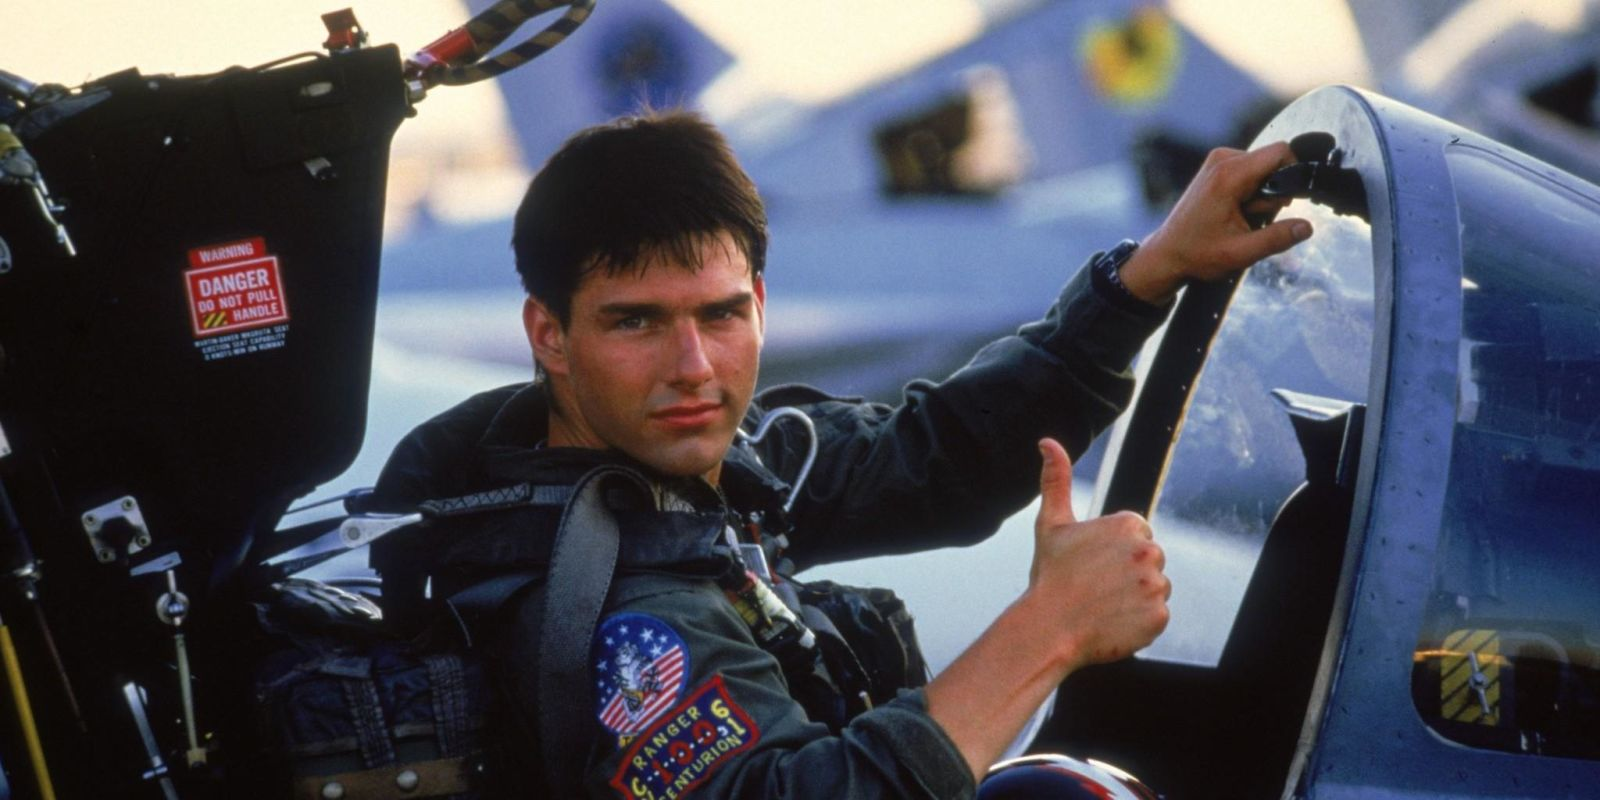 Tom Cruise still really wants to do Top Gun 2 and is in talks to make it happen